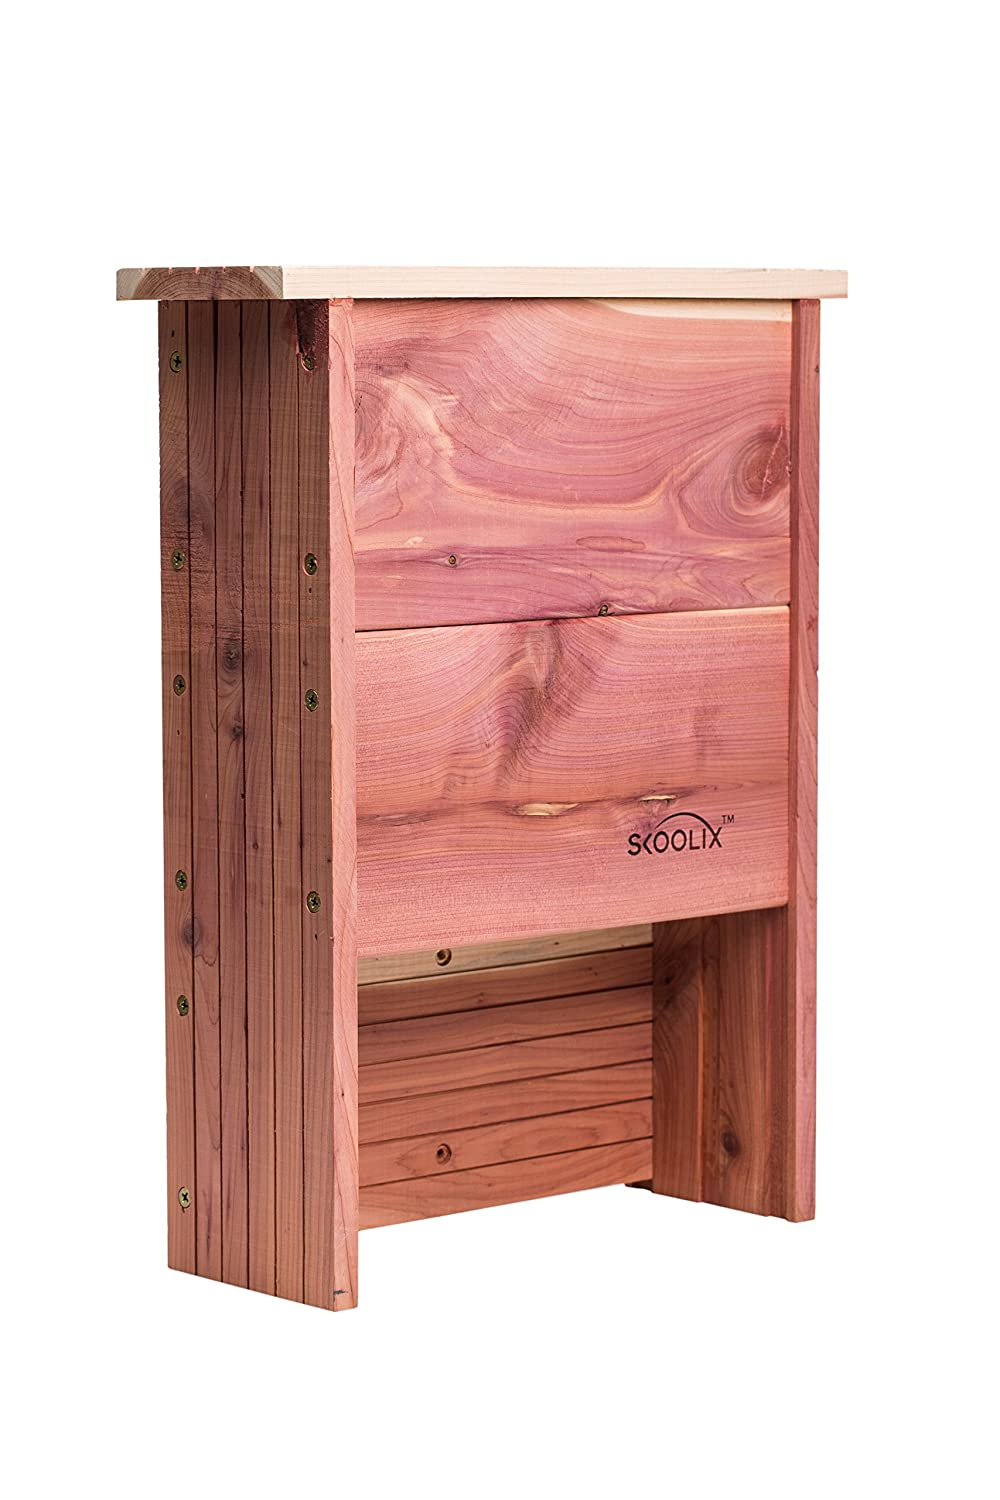 Wooden Bat House for Outdoors ~ Multi Double Chamber Bat Box~ Premium Red Cedar ~ Outdoor Bat Shelter ~ Environmental Friendly Natural Mosquito & insect control for your yard, flower and vegetable garden SKOOLIX